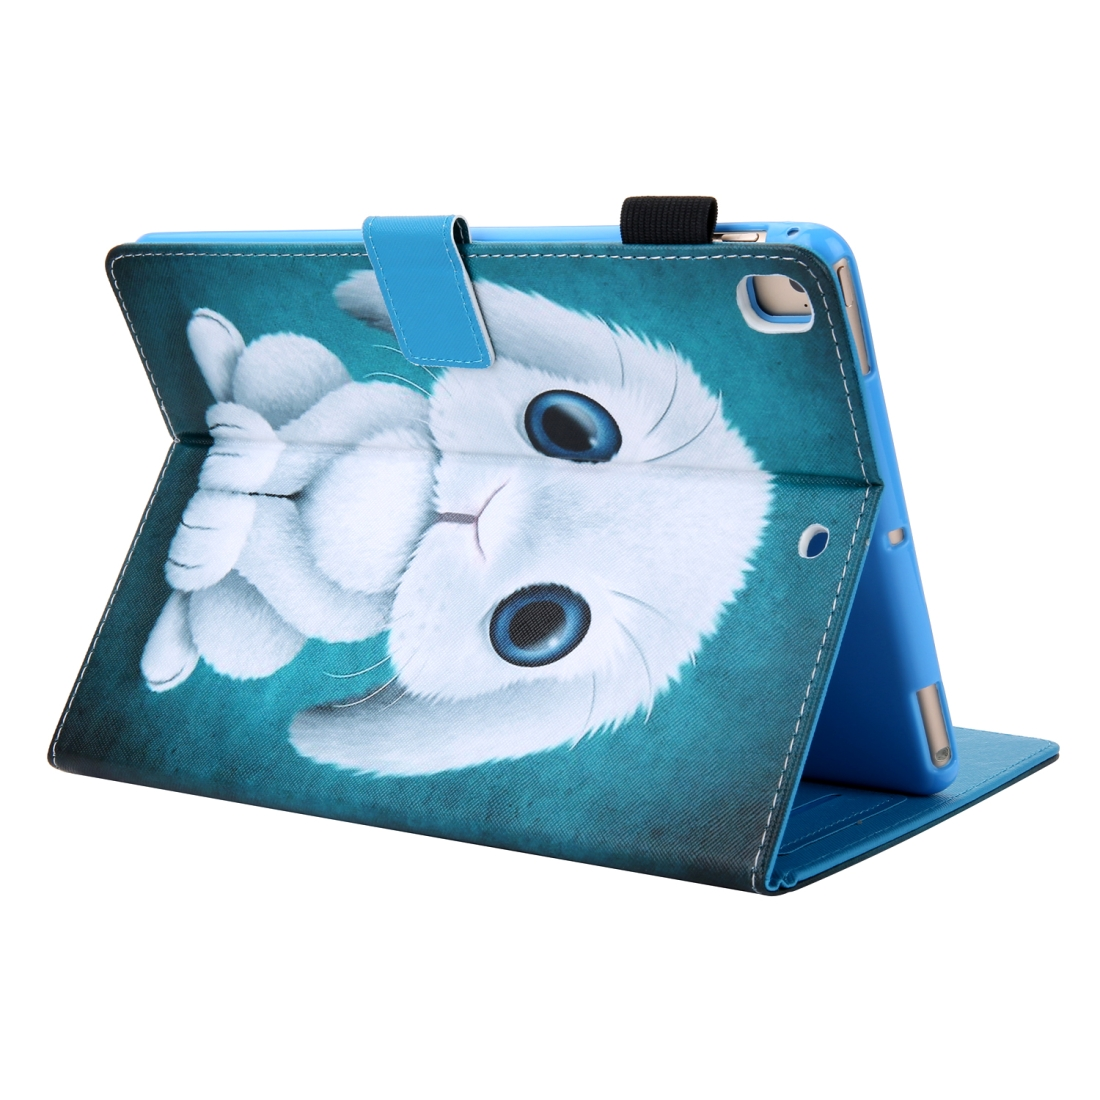 iPad 10.5 Case Colorful Design Leather Case with Sleeve (Rabbit)